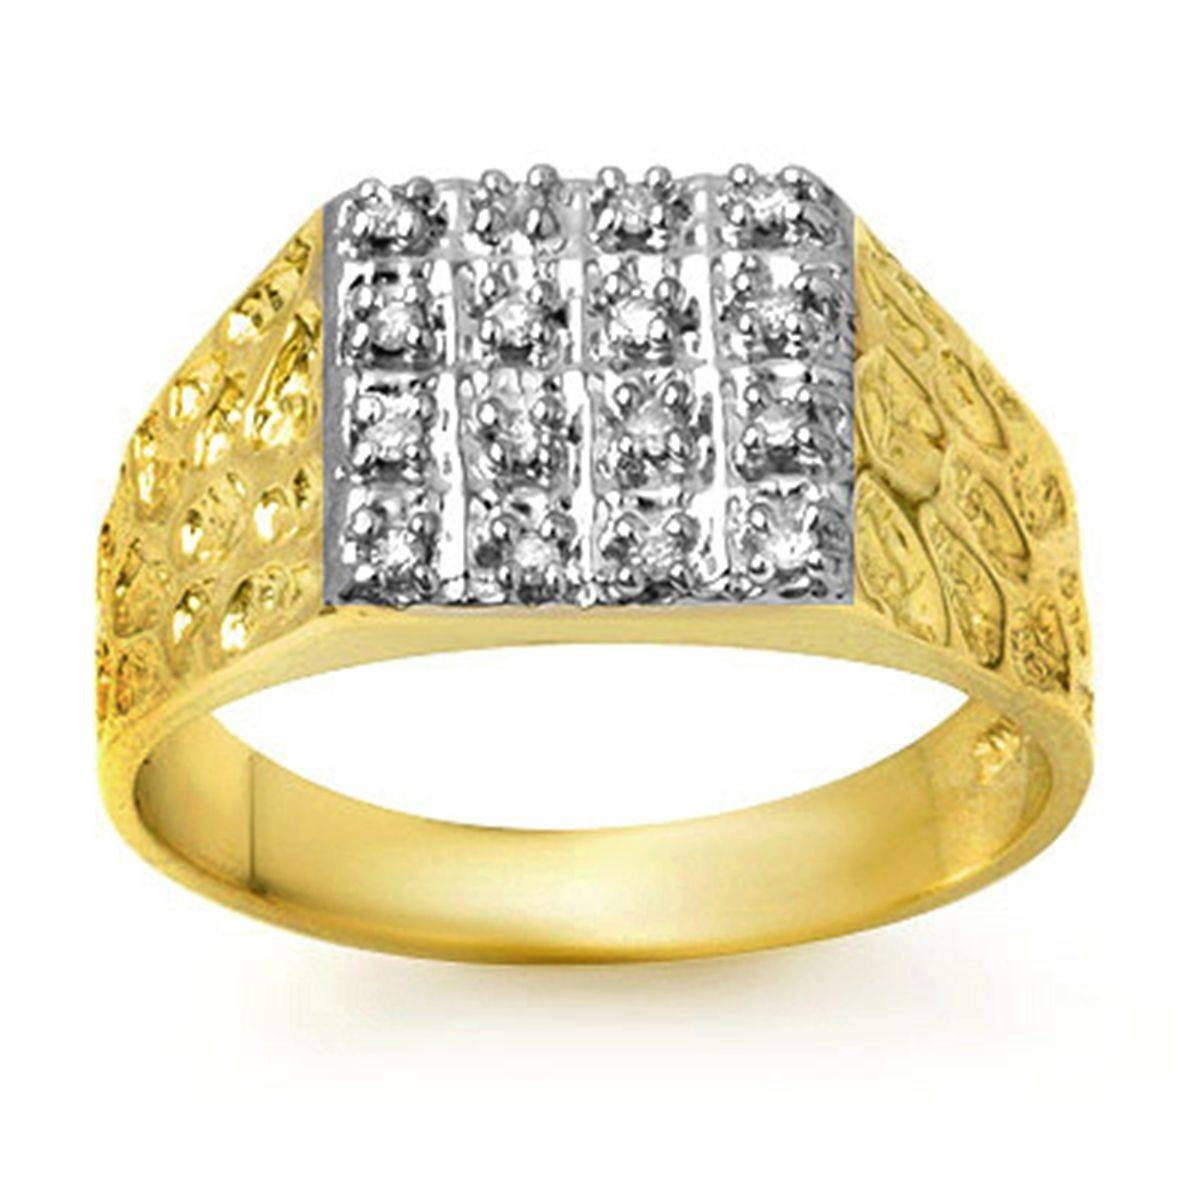 Mens Gold Diamond Rings | Wedding, Promise, Diamond, Engagement With Gold Diamond Wedding Rings For Men (View 11 of 15)